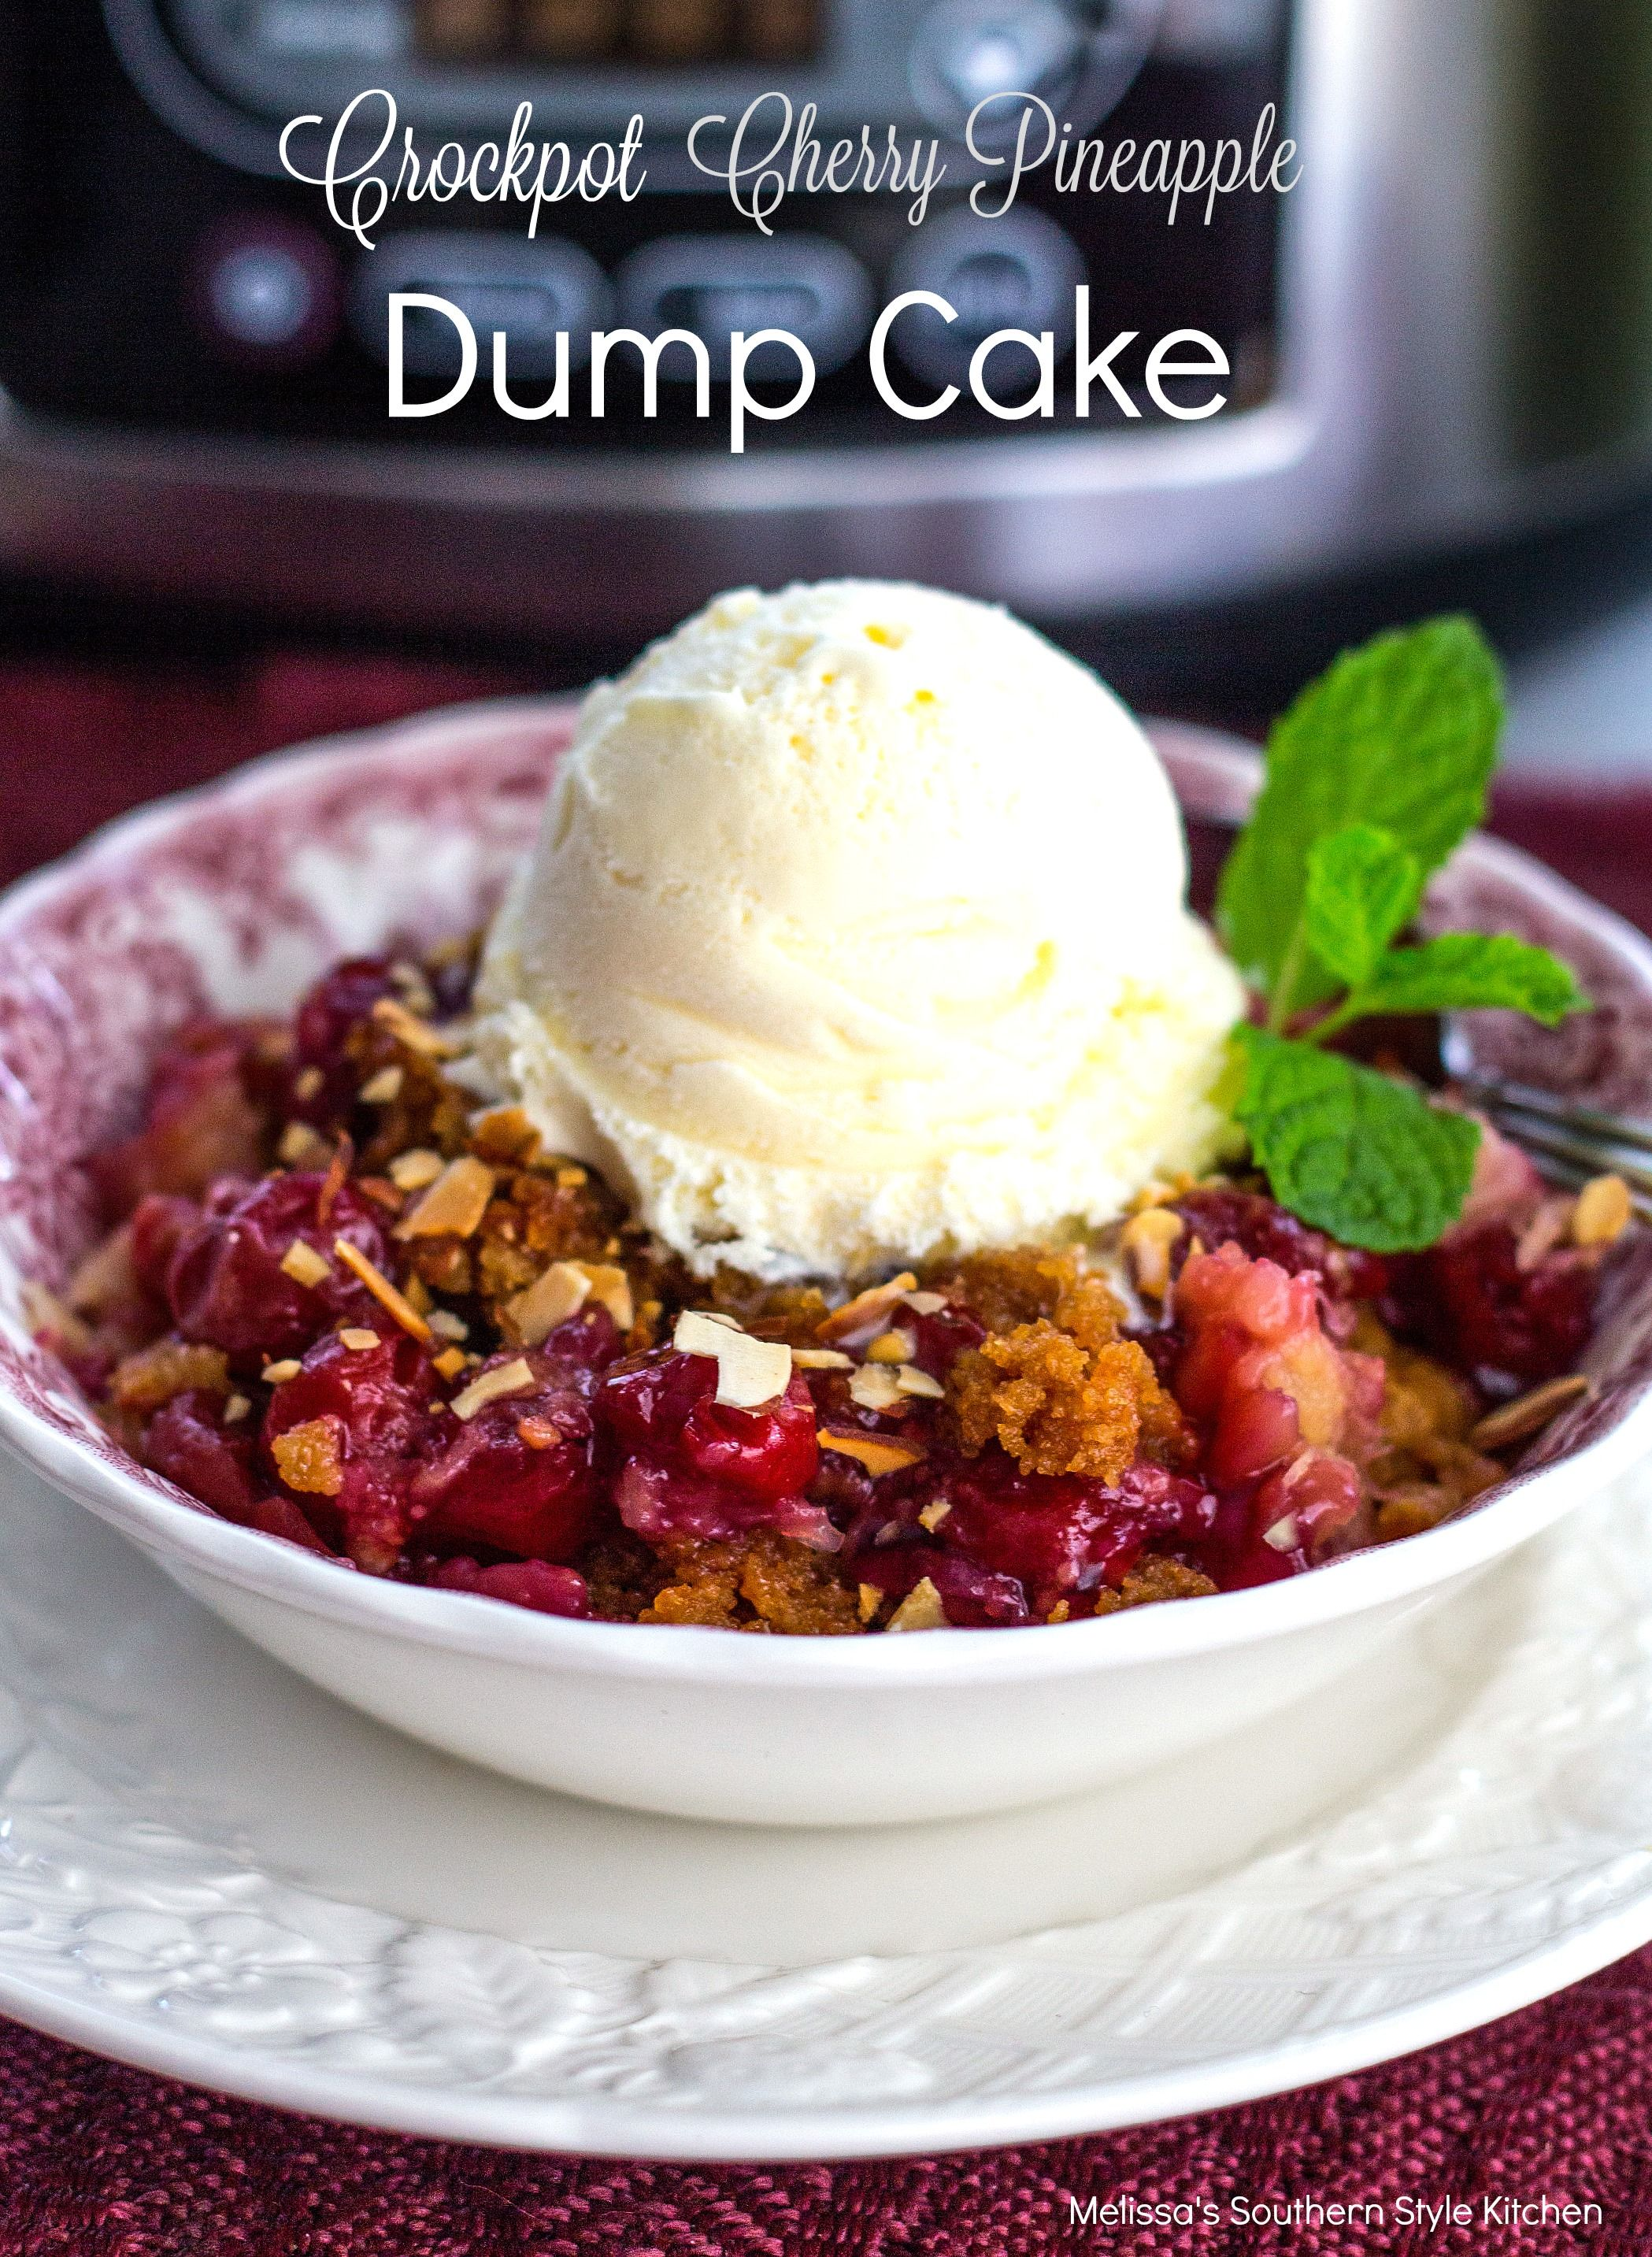 There are few desserts easier to make than dump cakes. Just as the name suggests the ingredients are dumped into one baking dish or crockpot with very little prep work required. They're a fun dessert to make suitable for beginner cook's or reluctant bakers.